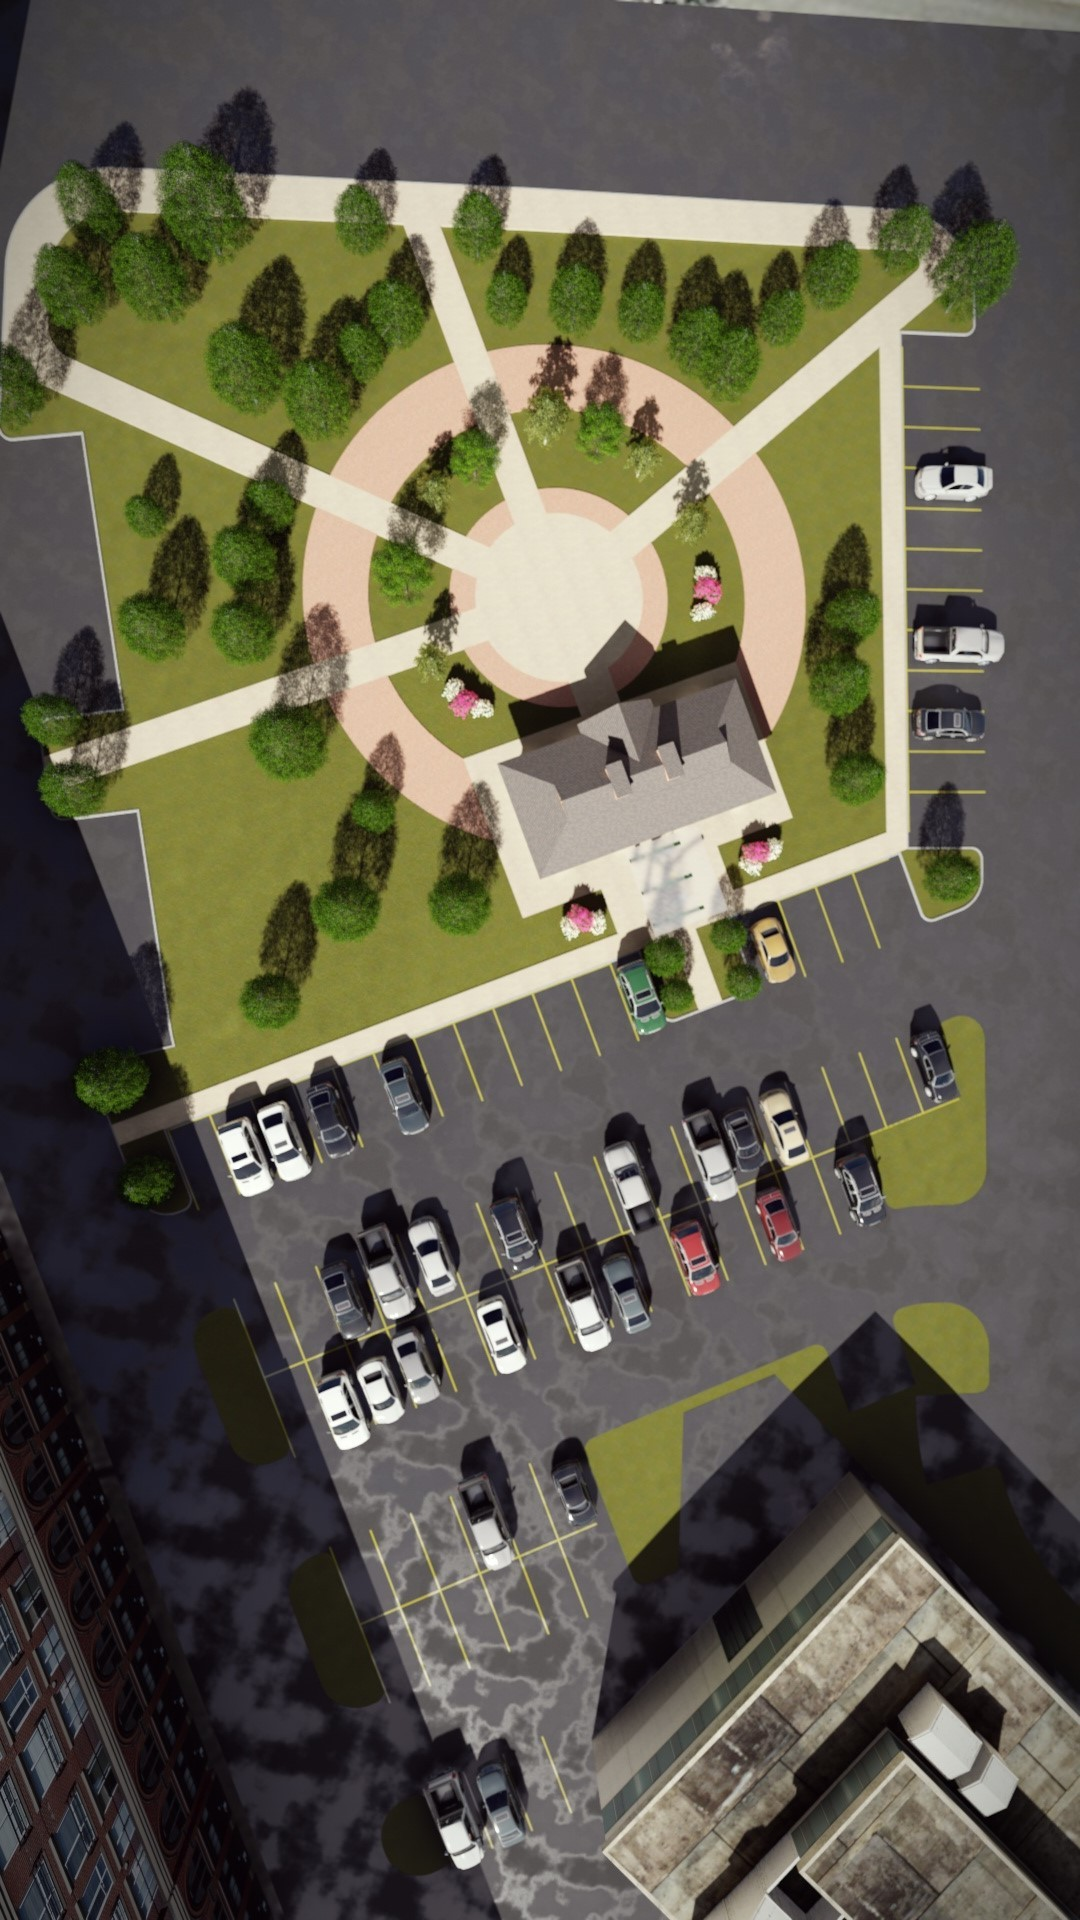 The City of Tonawanda is working on a comprensive plan for the city's future, including projects like the $1.4 intermodal bike hub  which is one way the City of Tonawanda is already looking at to update the city's downtown area.